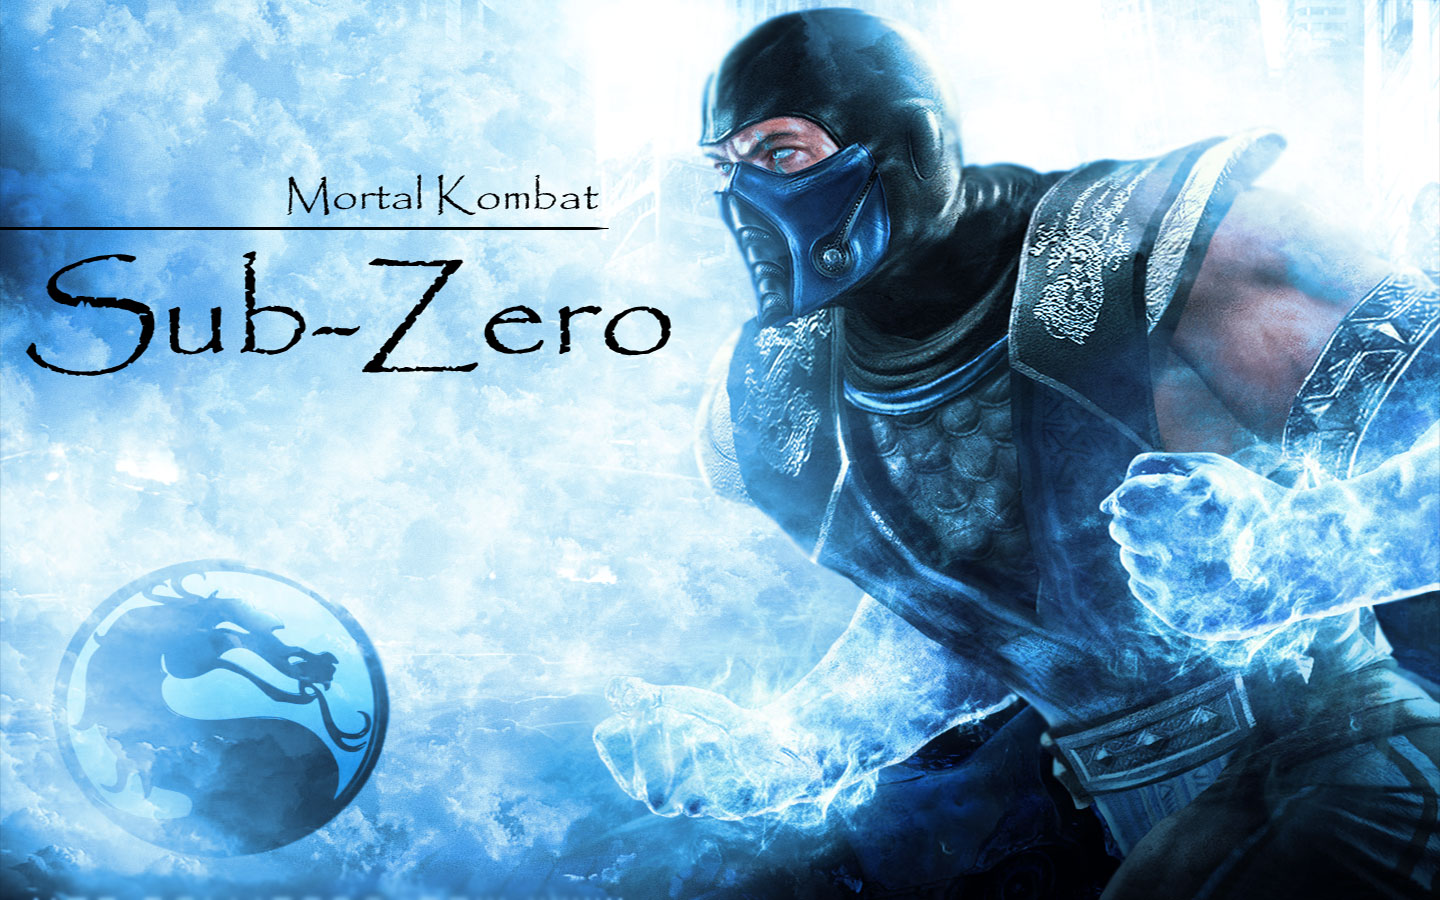 Sub Zero Mortal Kombat Wallpaper 1440x900 Full HD Wallpapers 1440x900